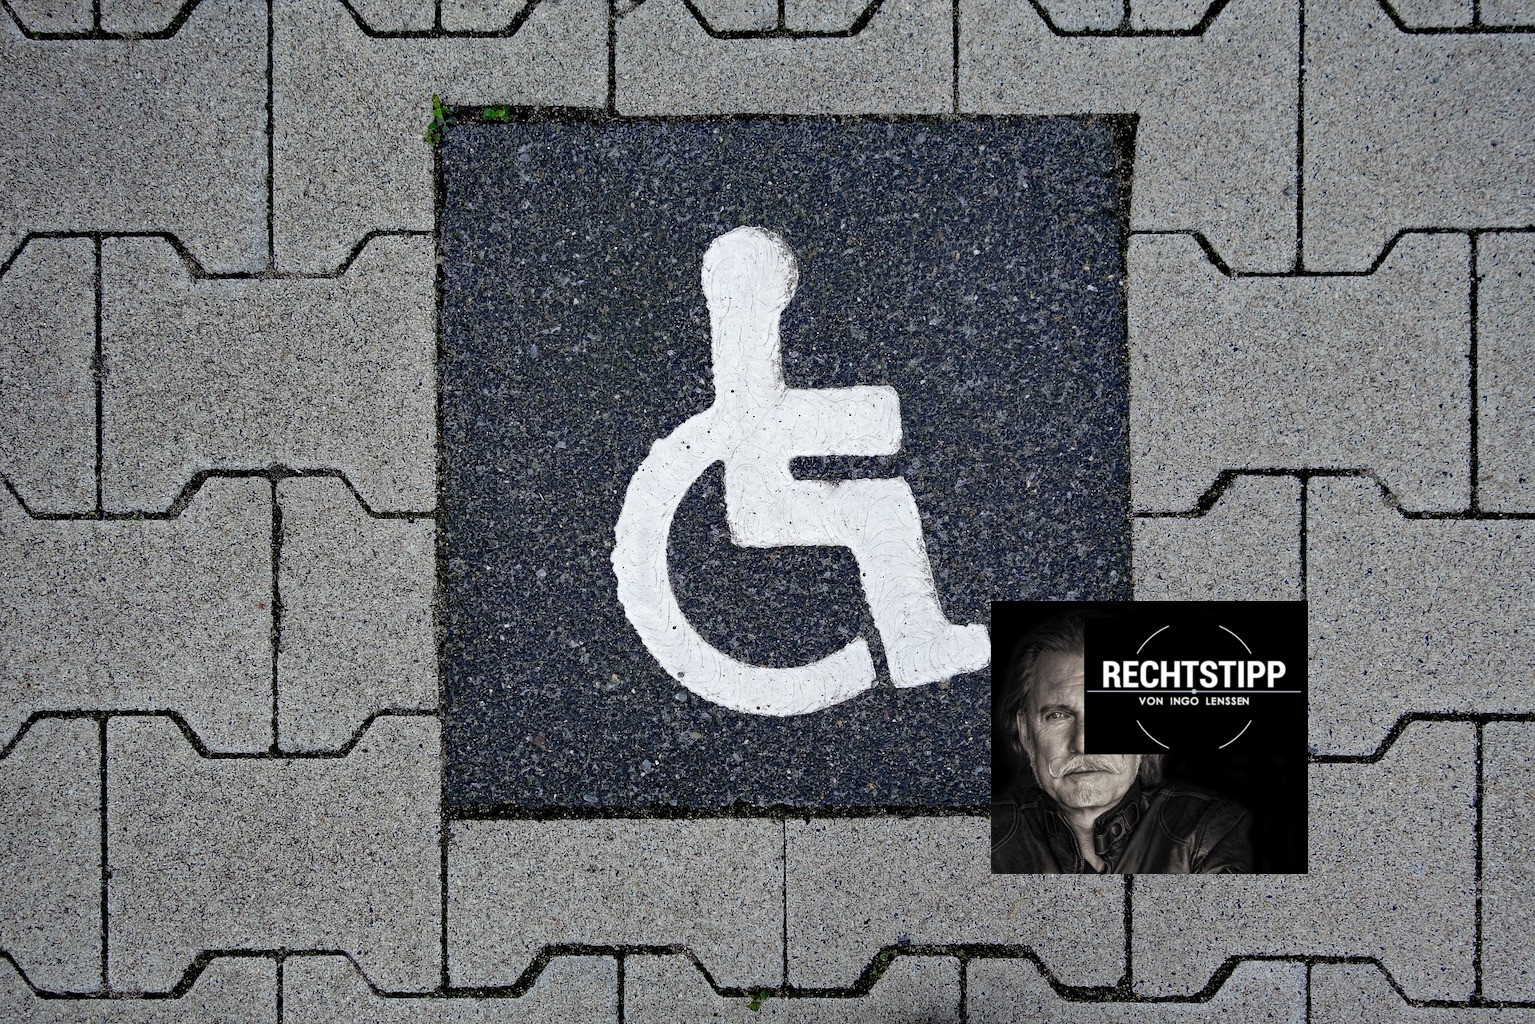 disabled-parking-space-3570517_1920